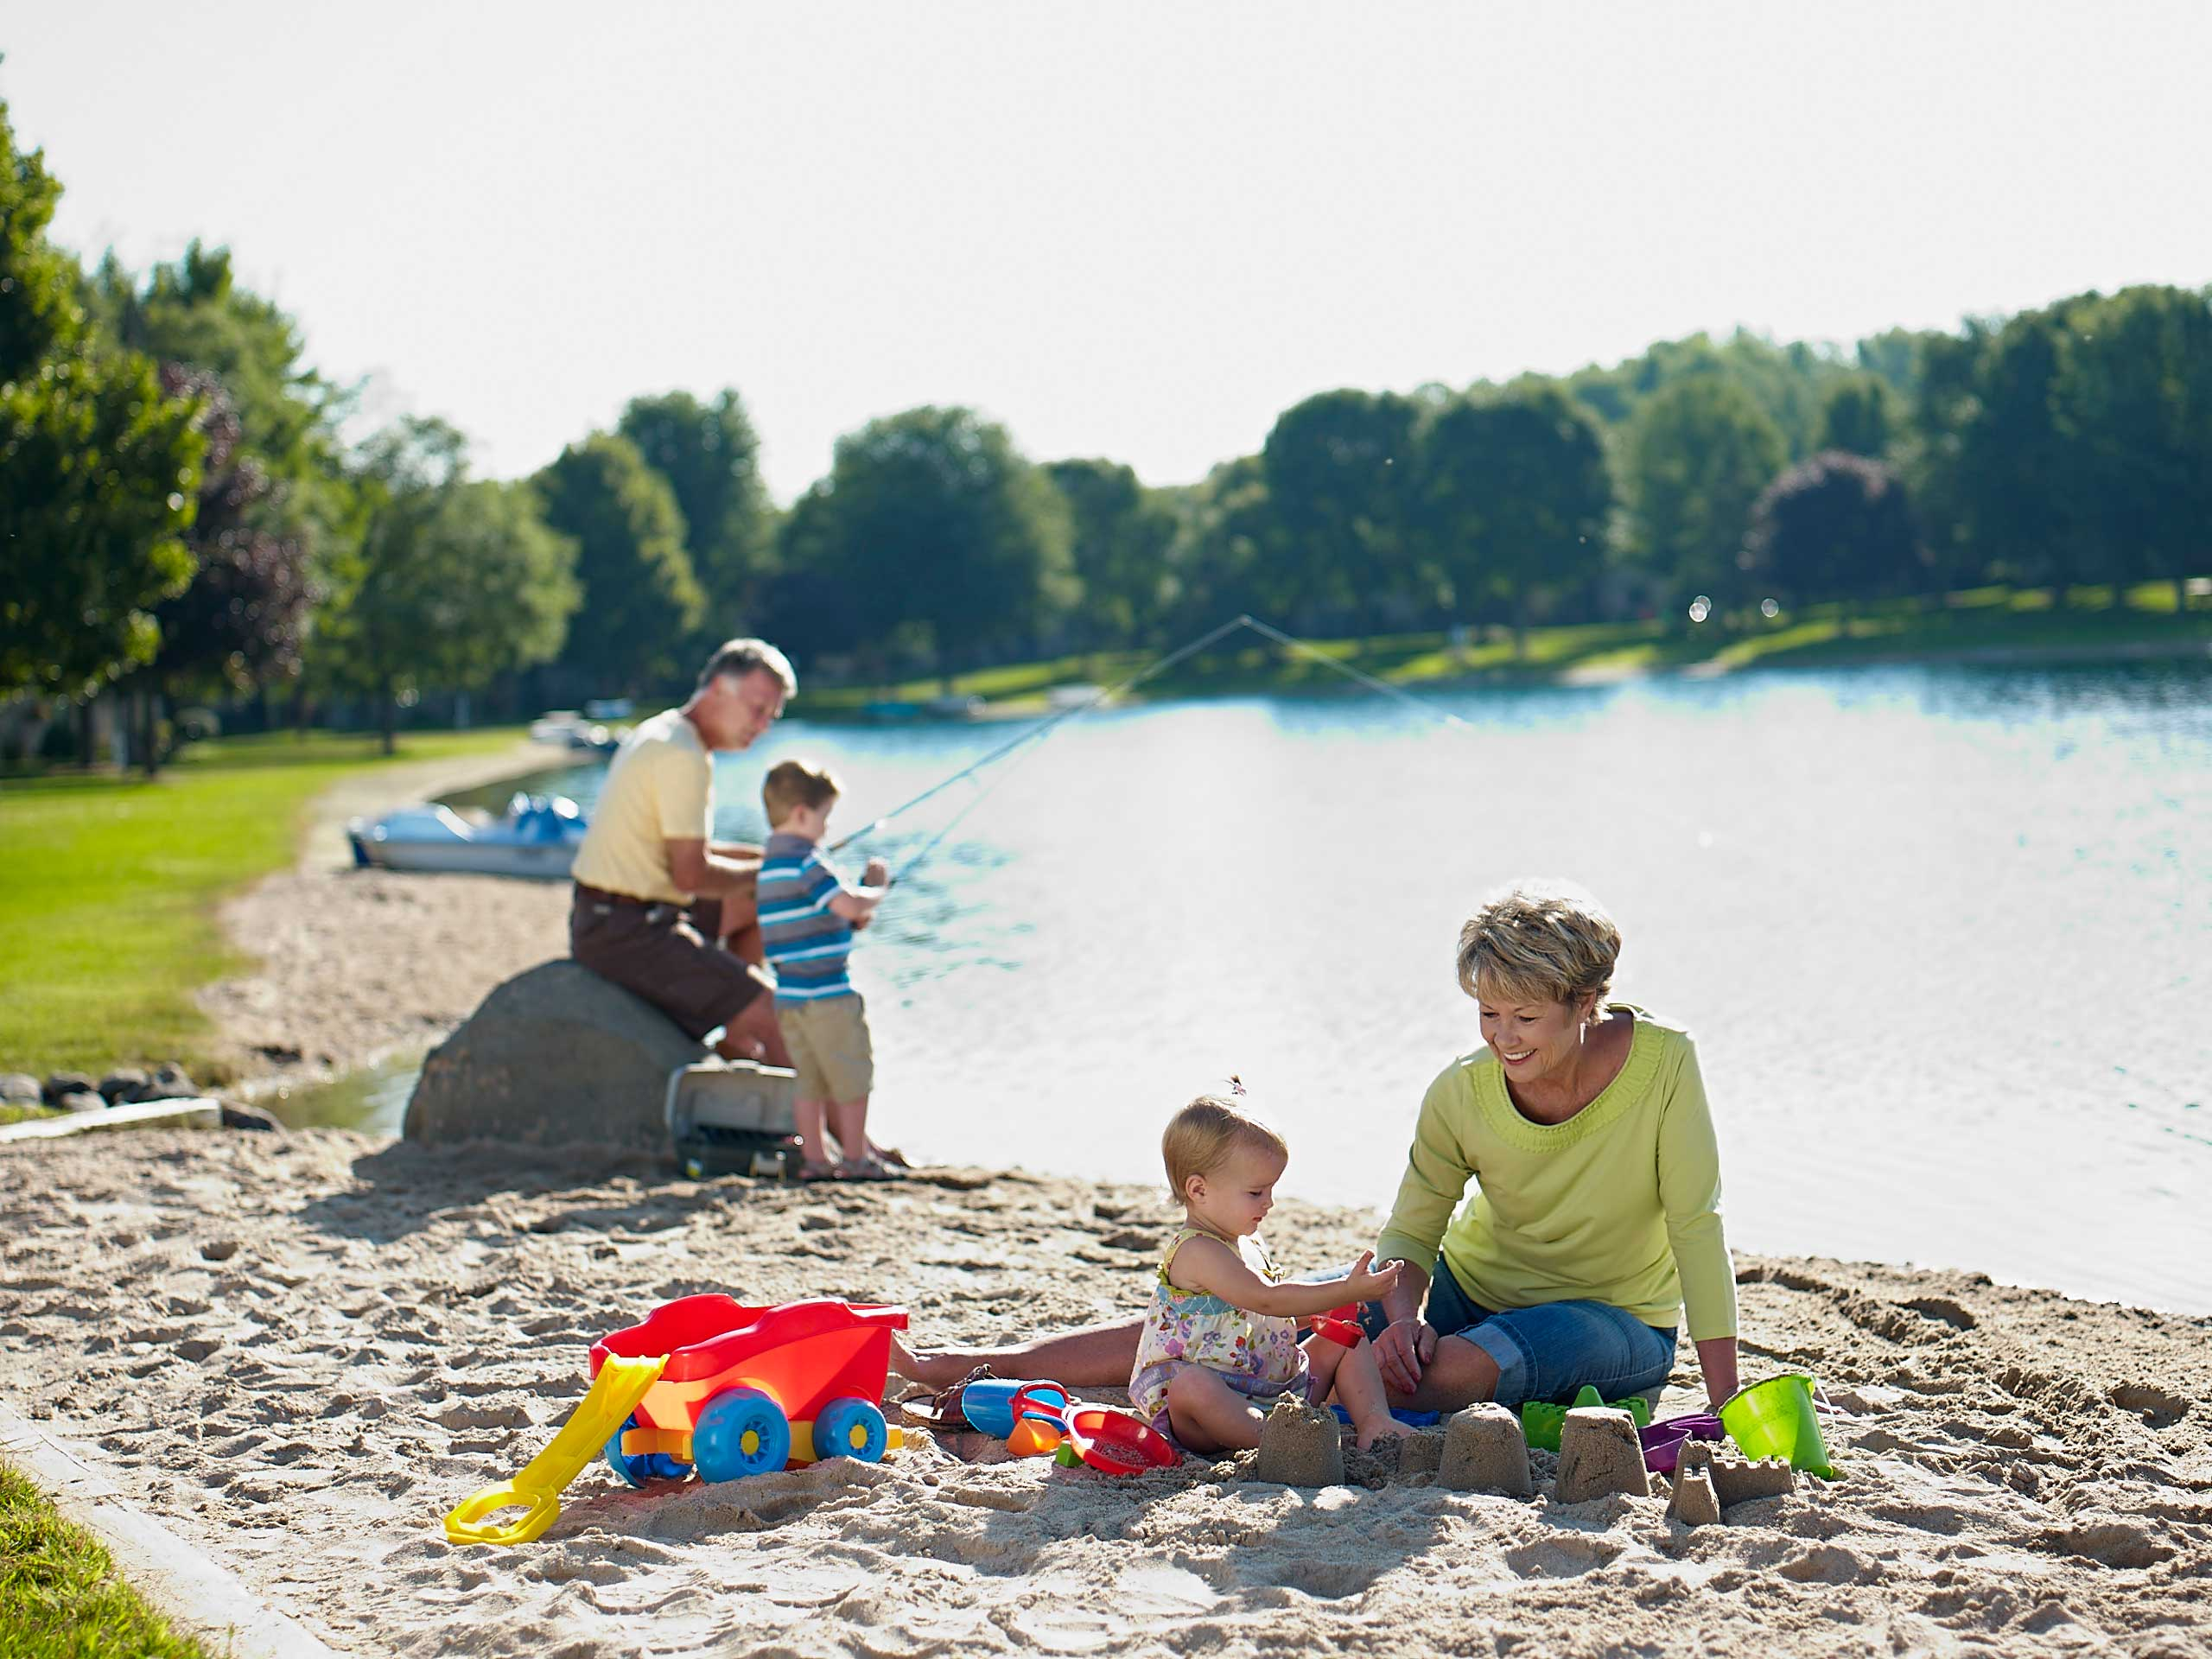 Apartments with residential activities in Northeast Wisconsin